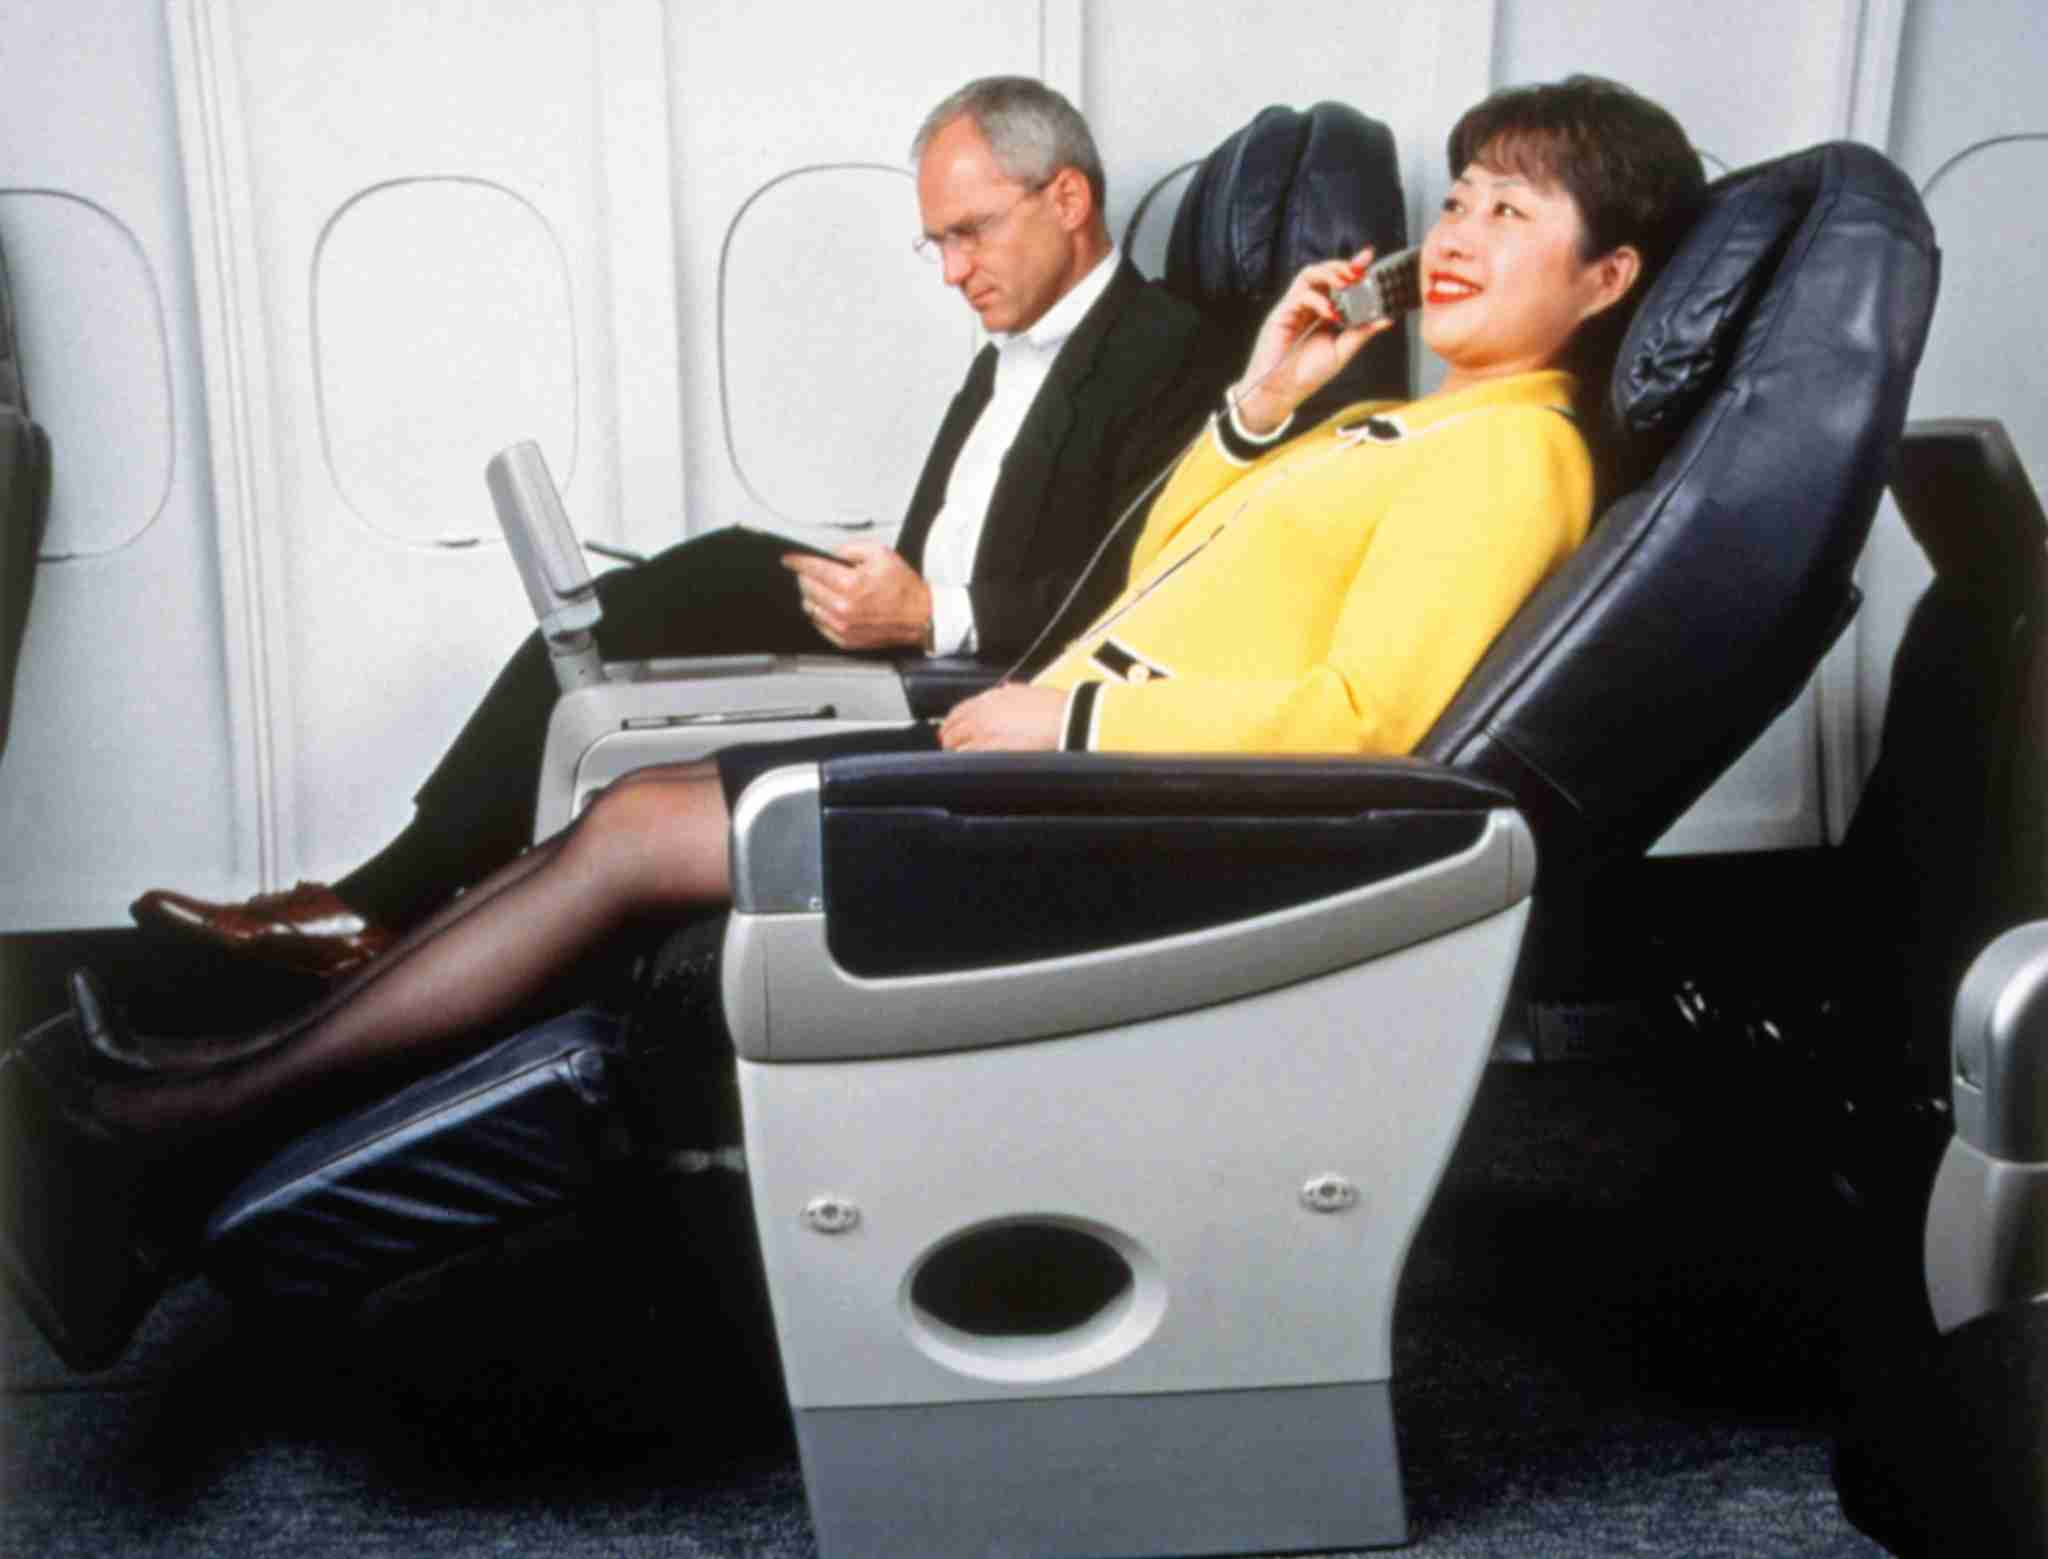 By 1998, Delta was offering BusinessElite service featuring cradle chairs with legrests and adjustable settings. The first class cabin was no longer offered on international flights. Image courtesy of Delta Air Lines.